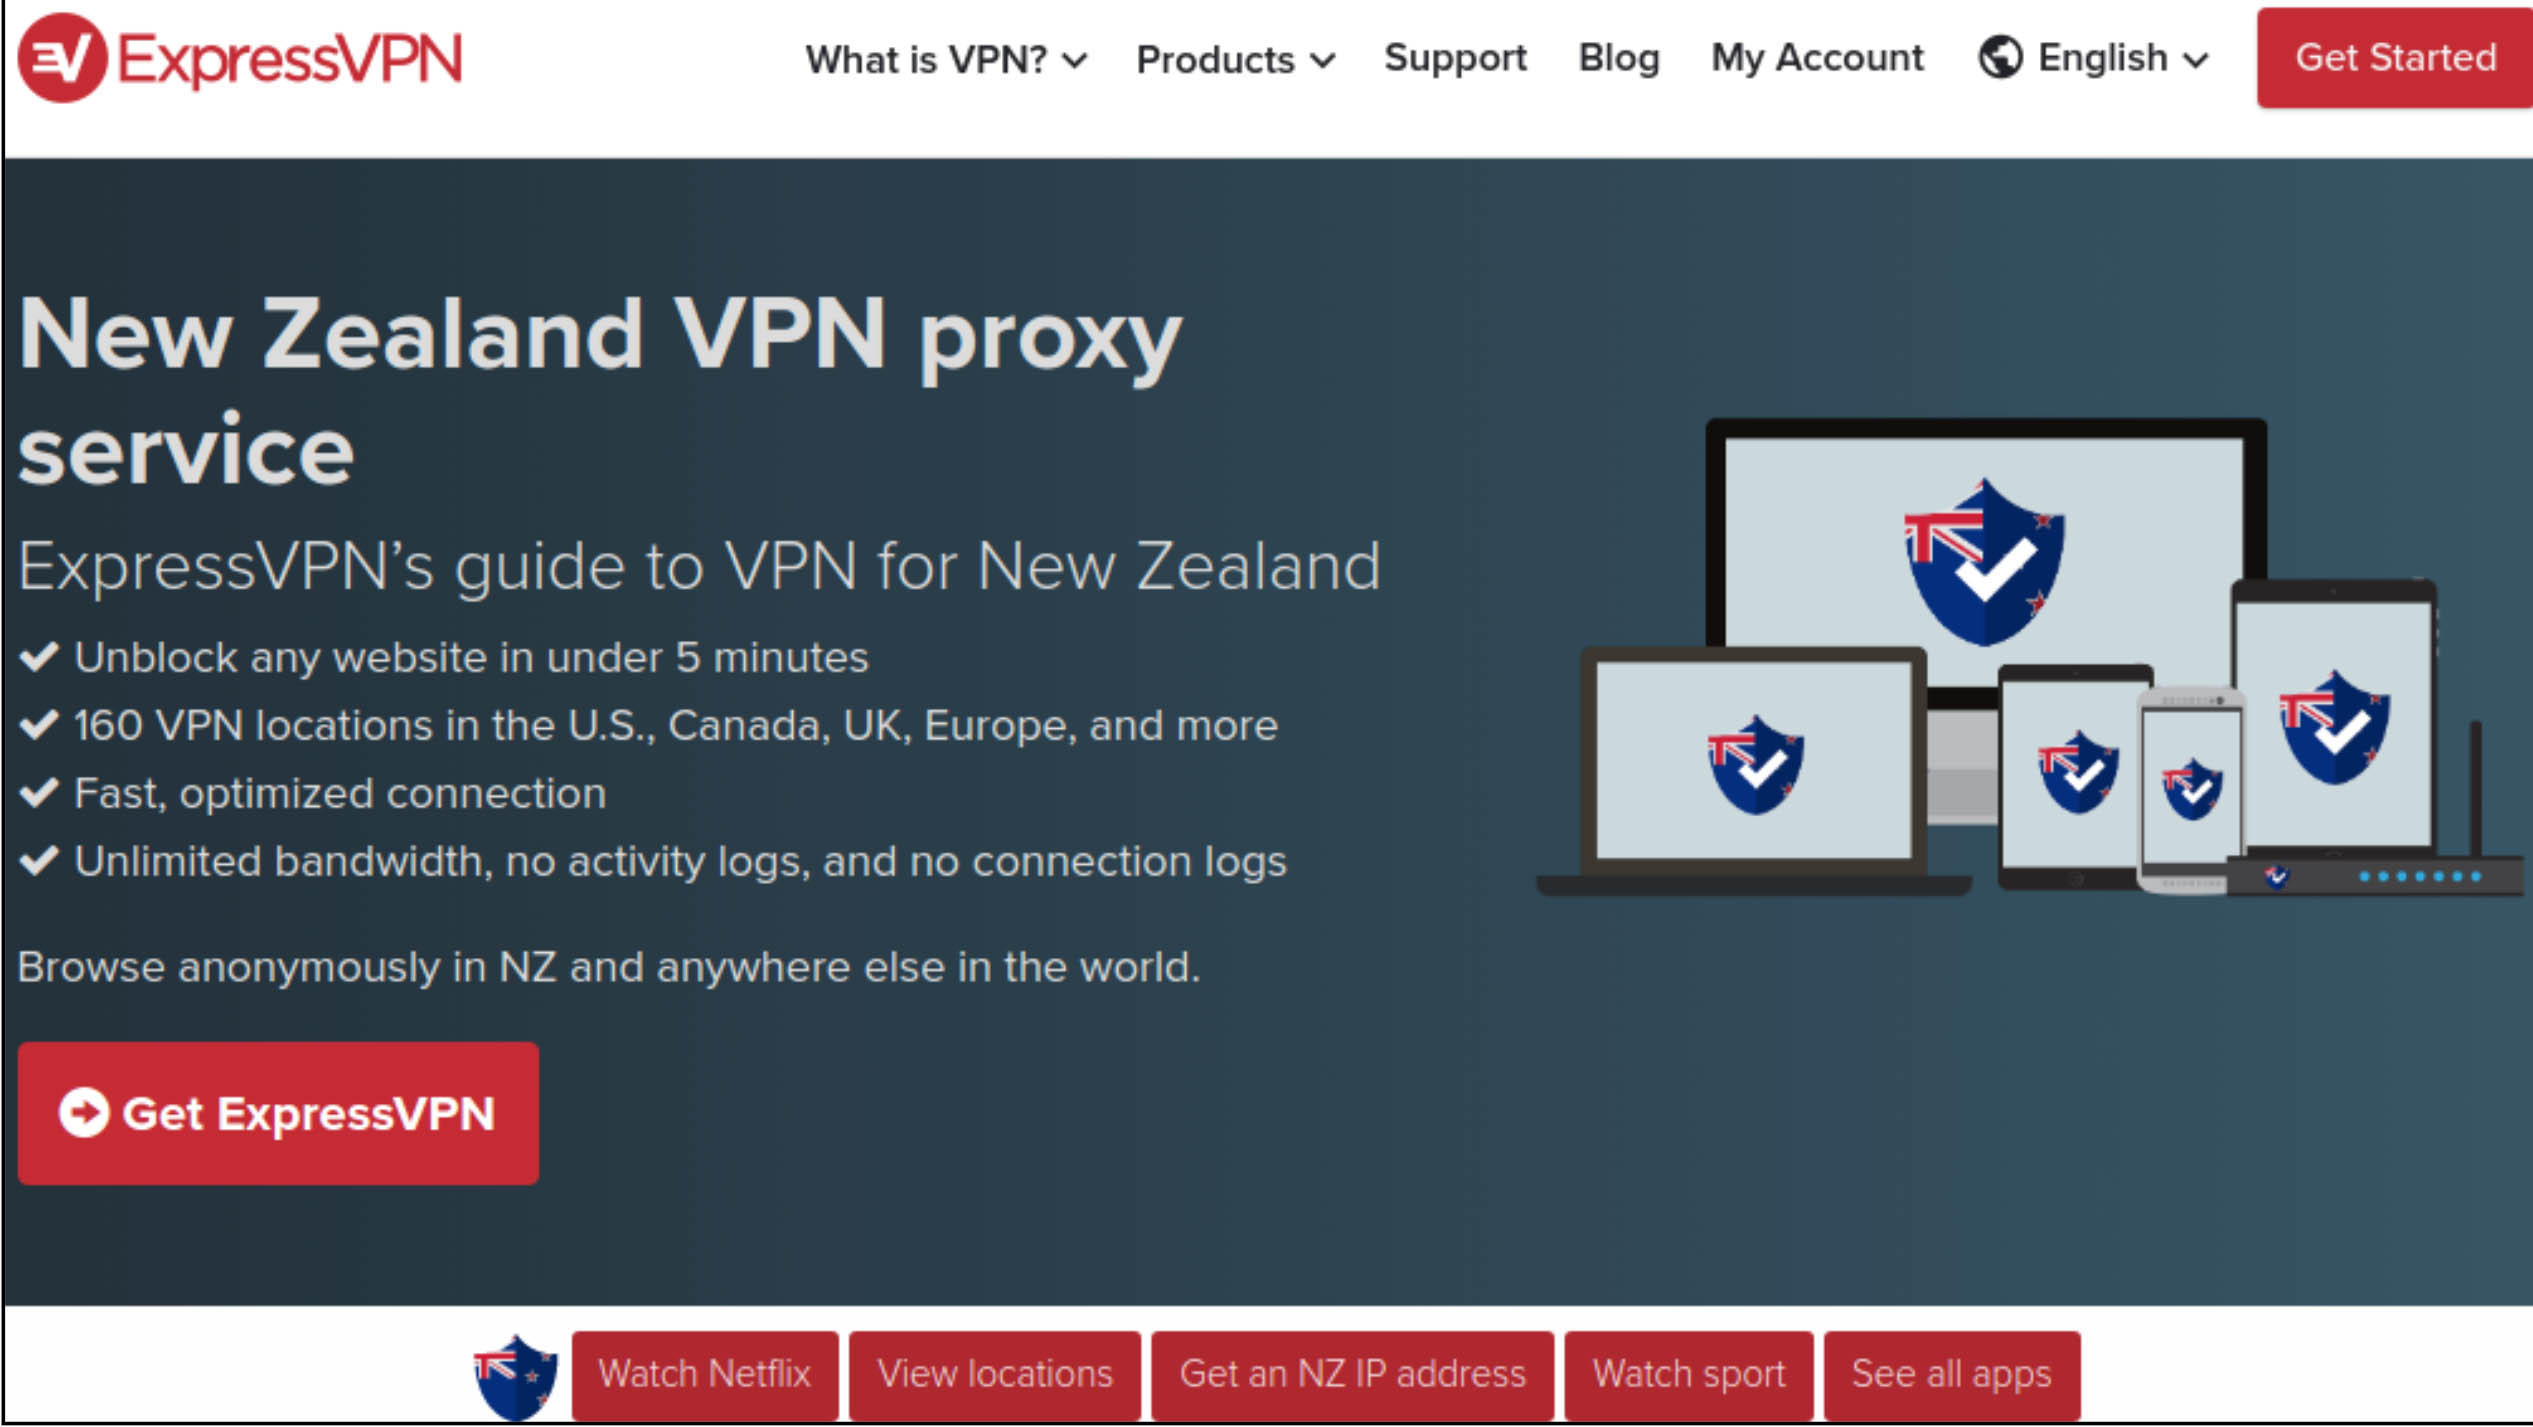 Screenshot of ExpressVPN's vendor welcome page for its New Zealand VPN service with product information and purchasing links.